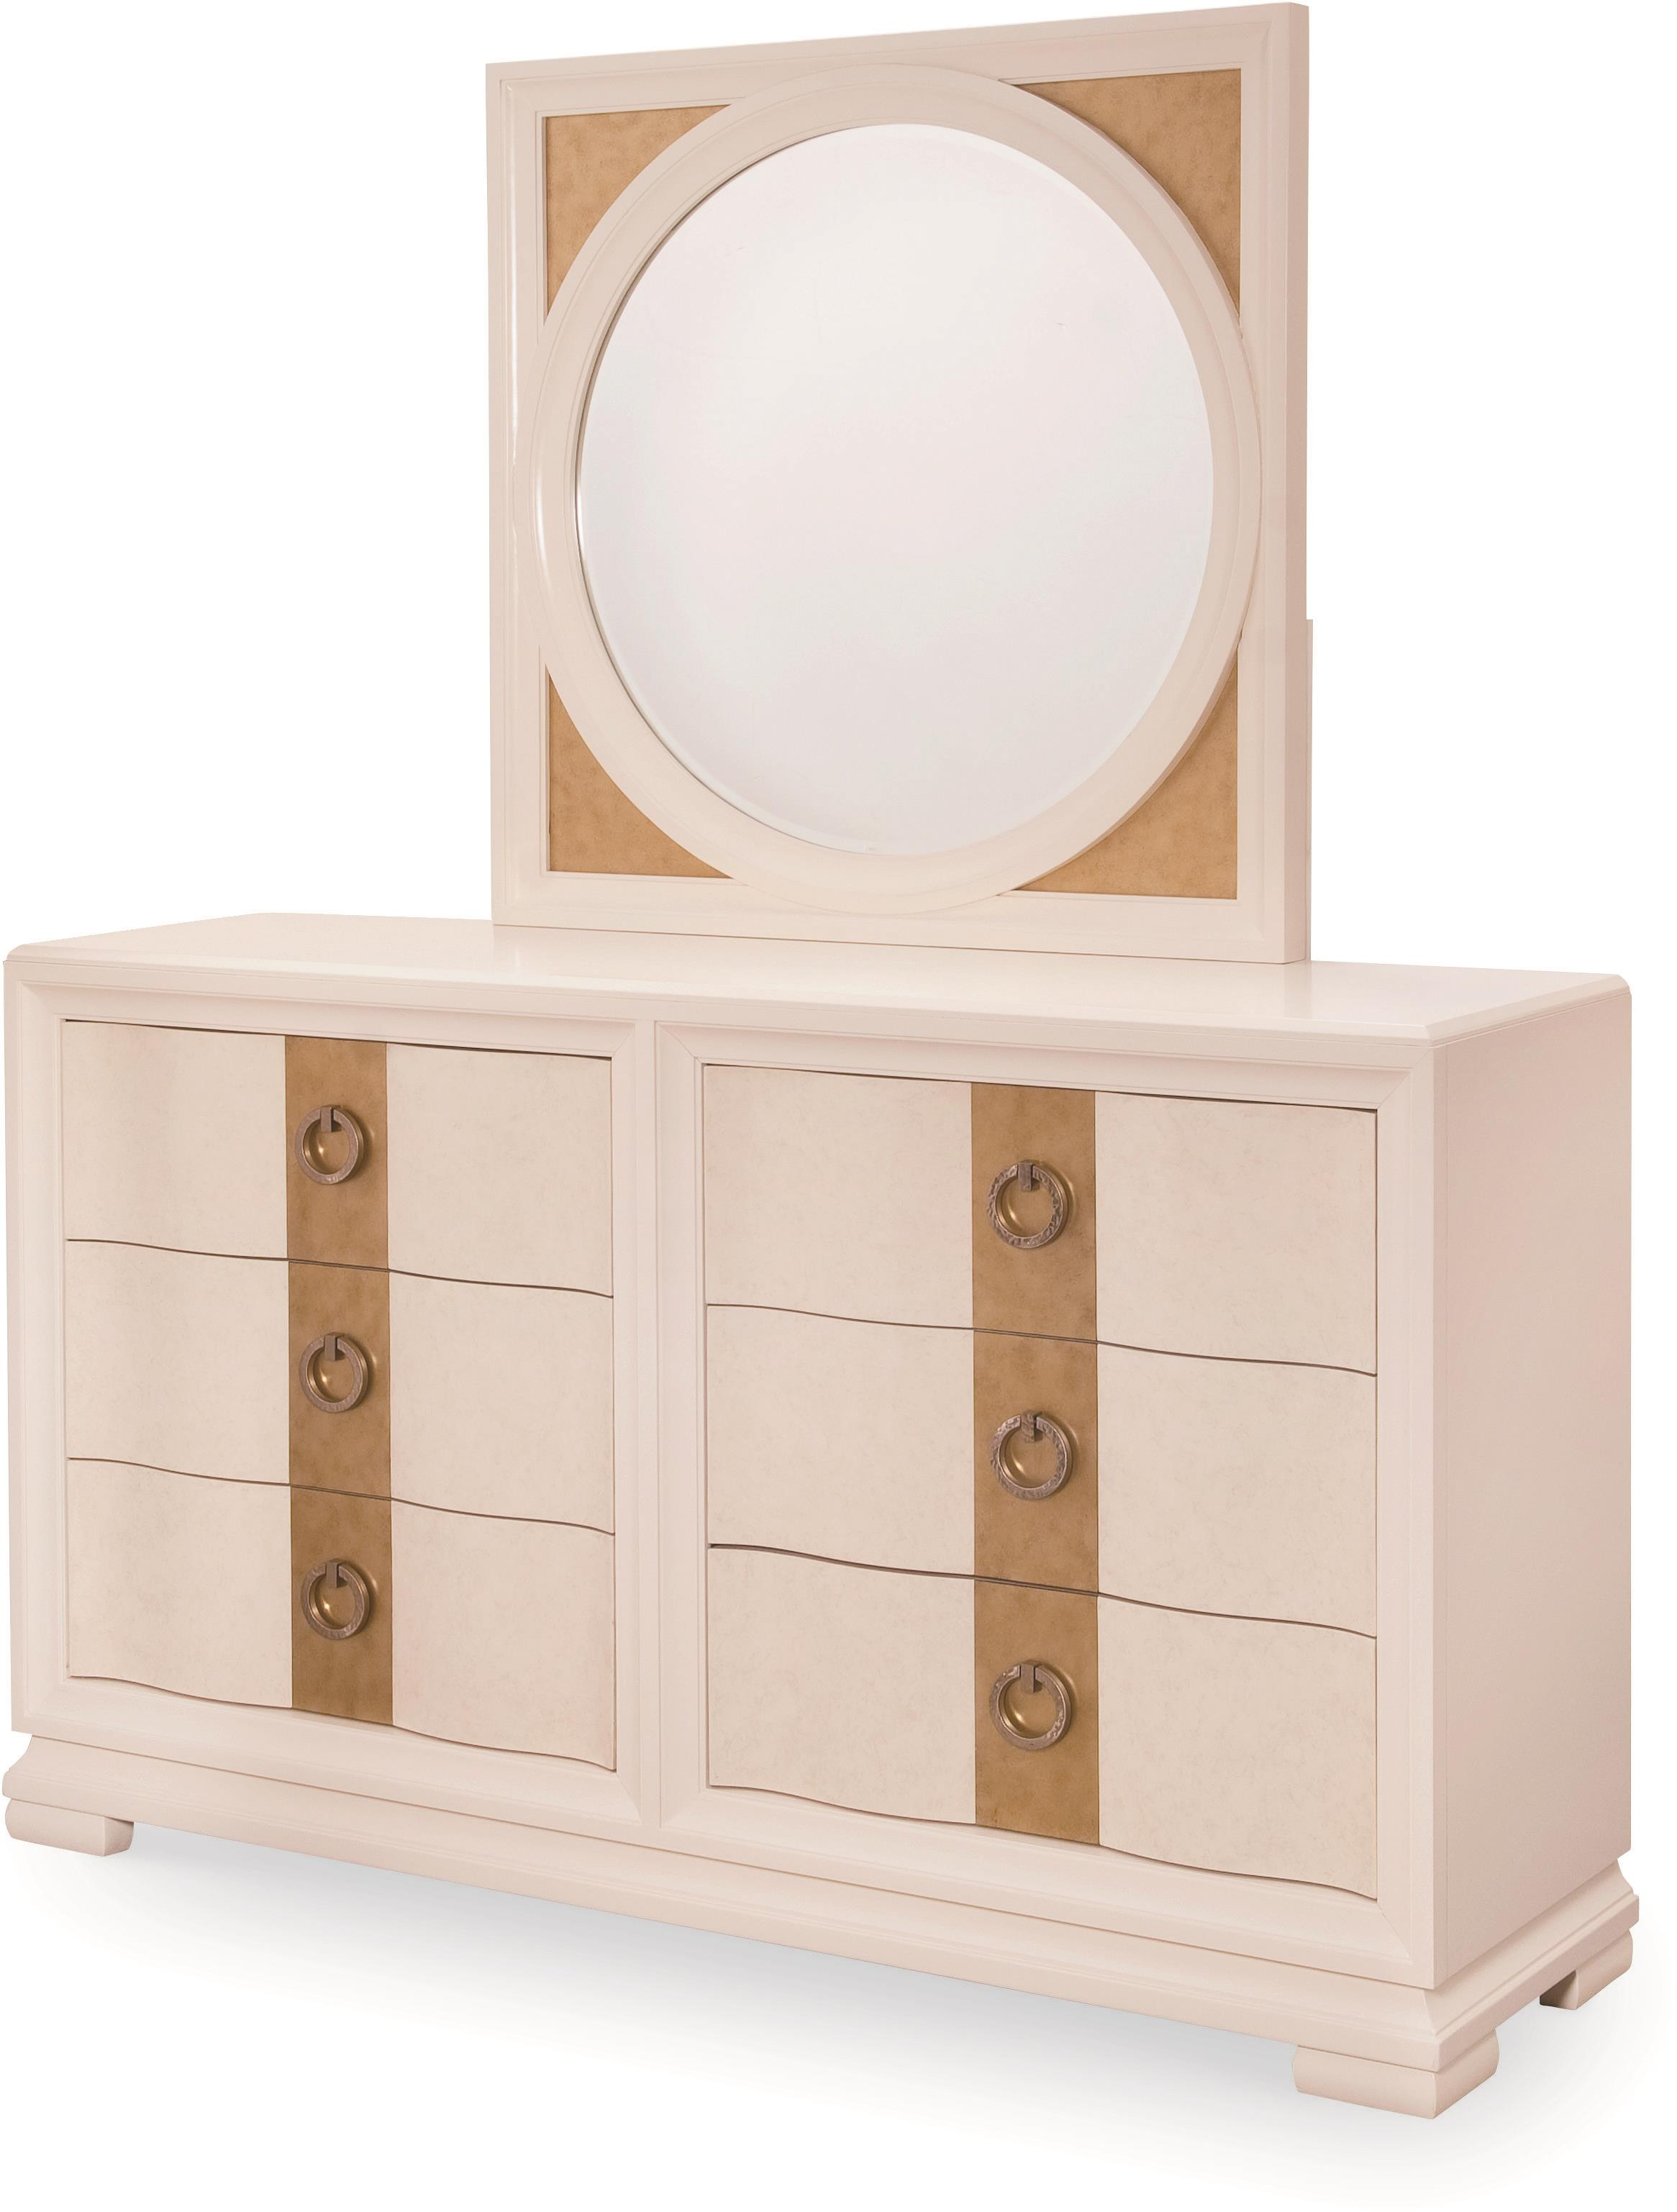 Legacy Classic Tower Suite Dresser and Mirror - Item Number: 5010-0200+1200